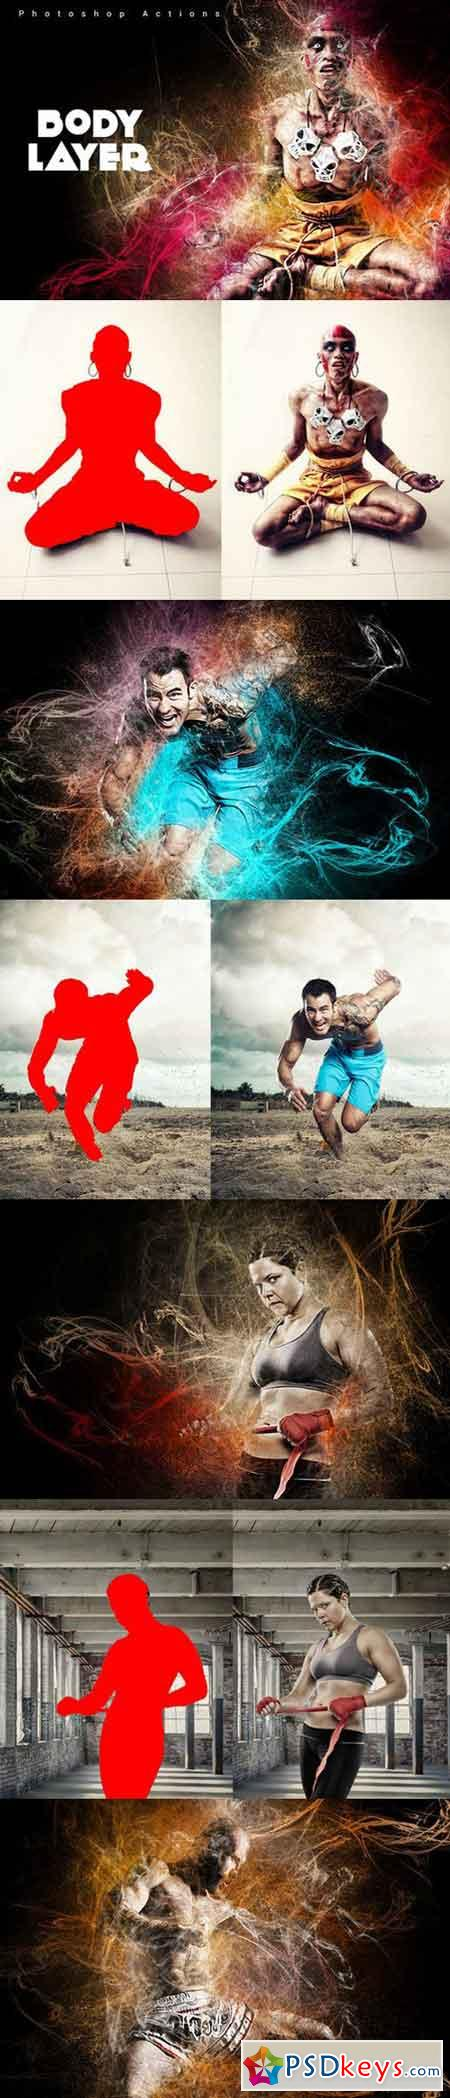 Body Layers Photoshop Actions 847901